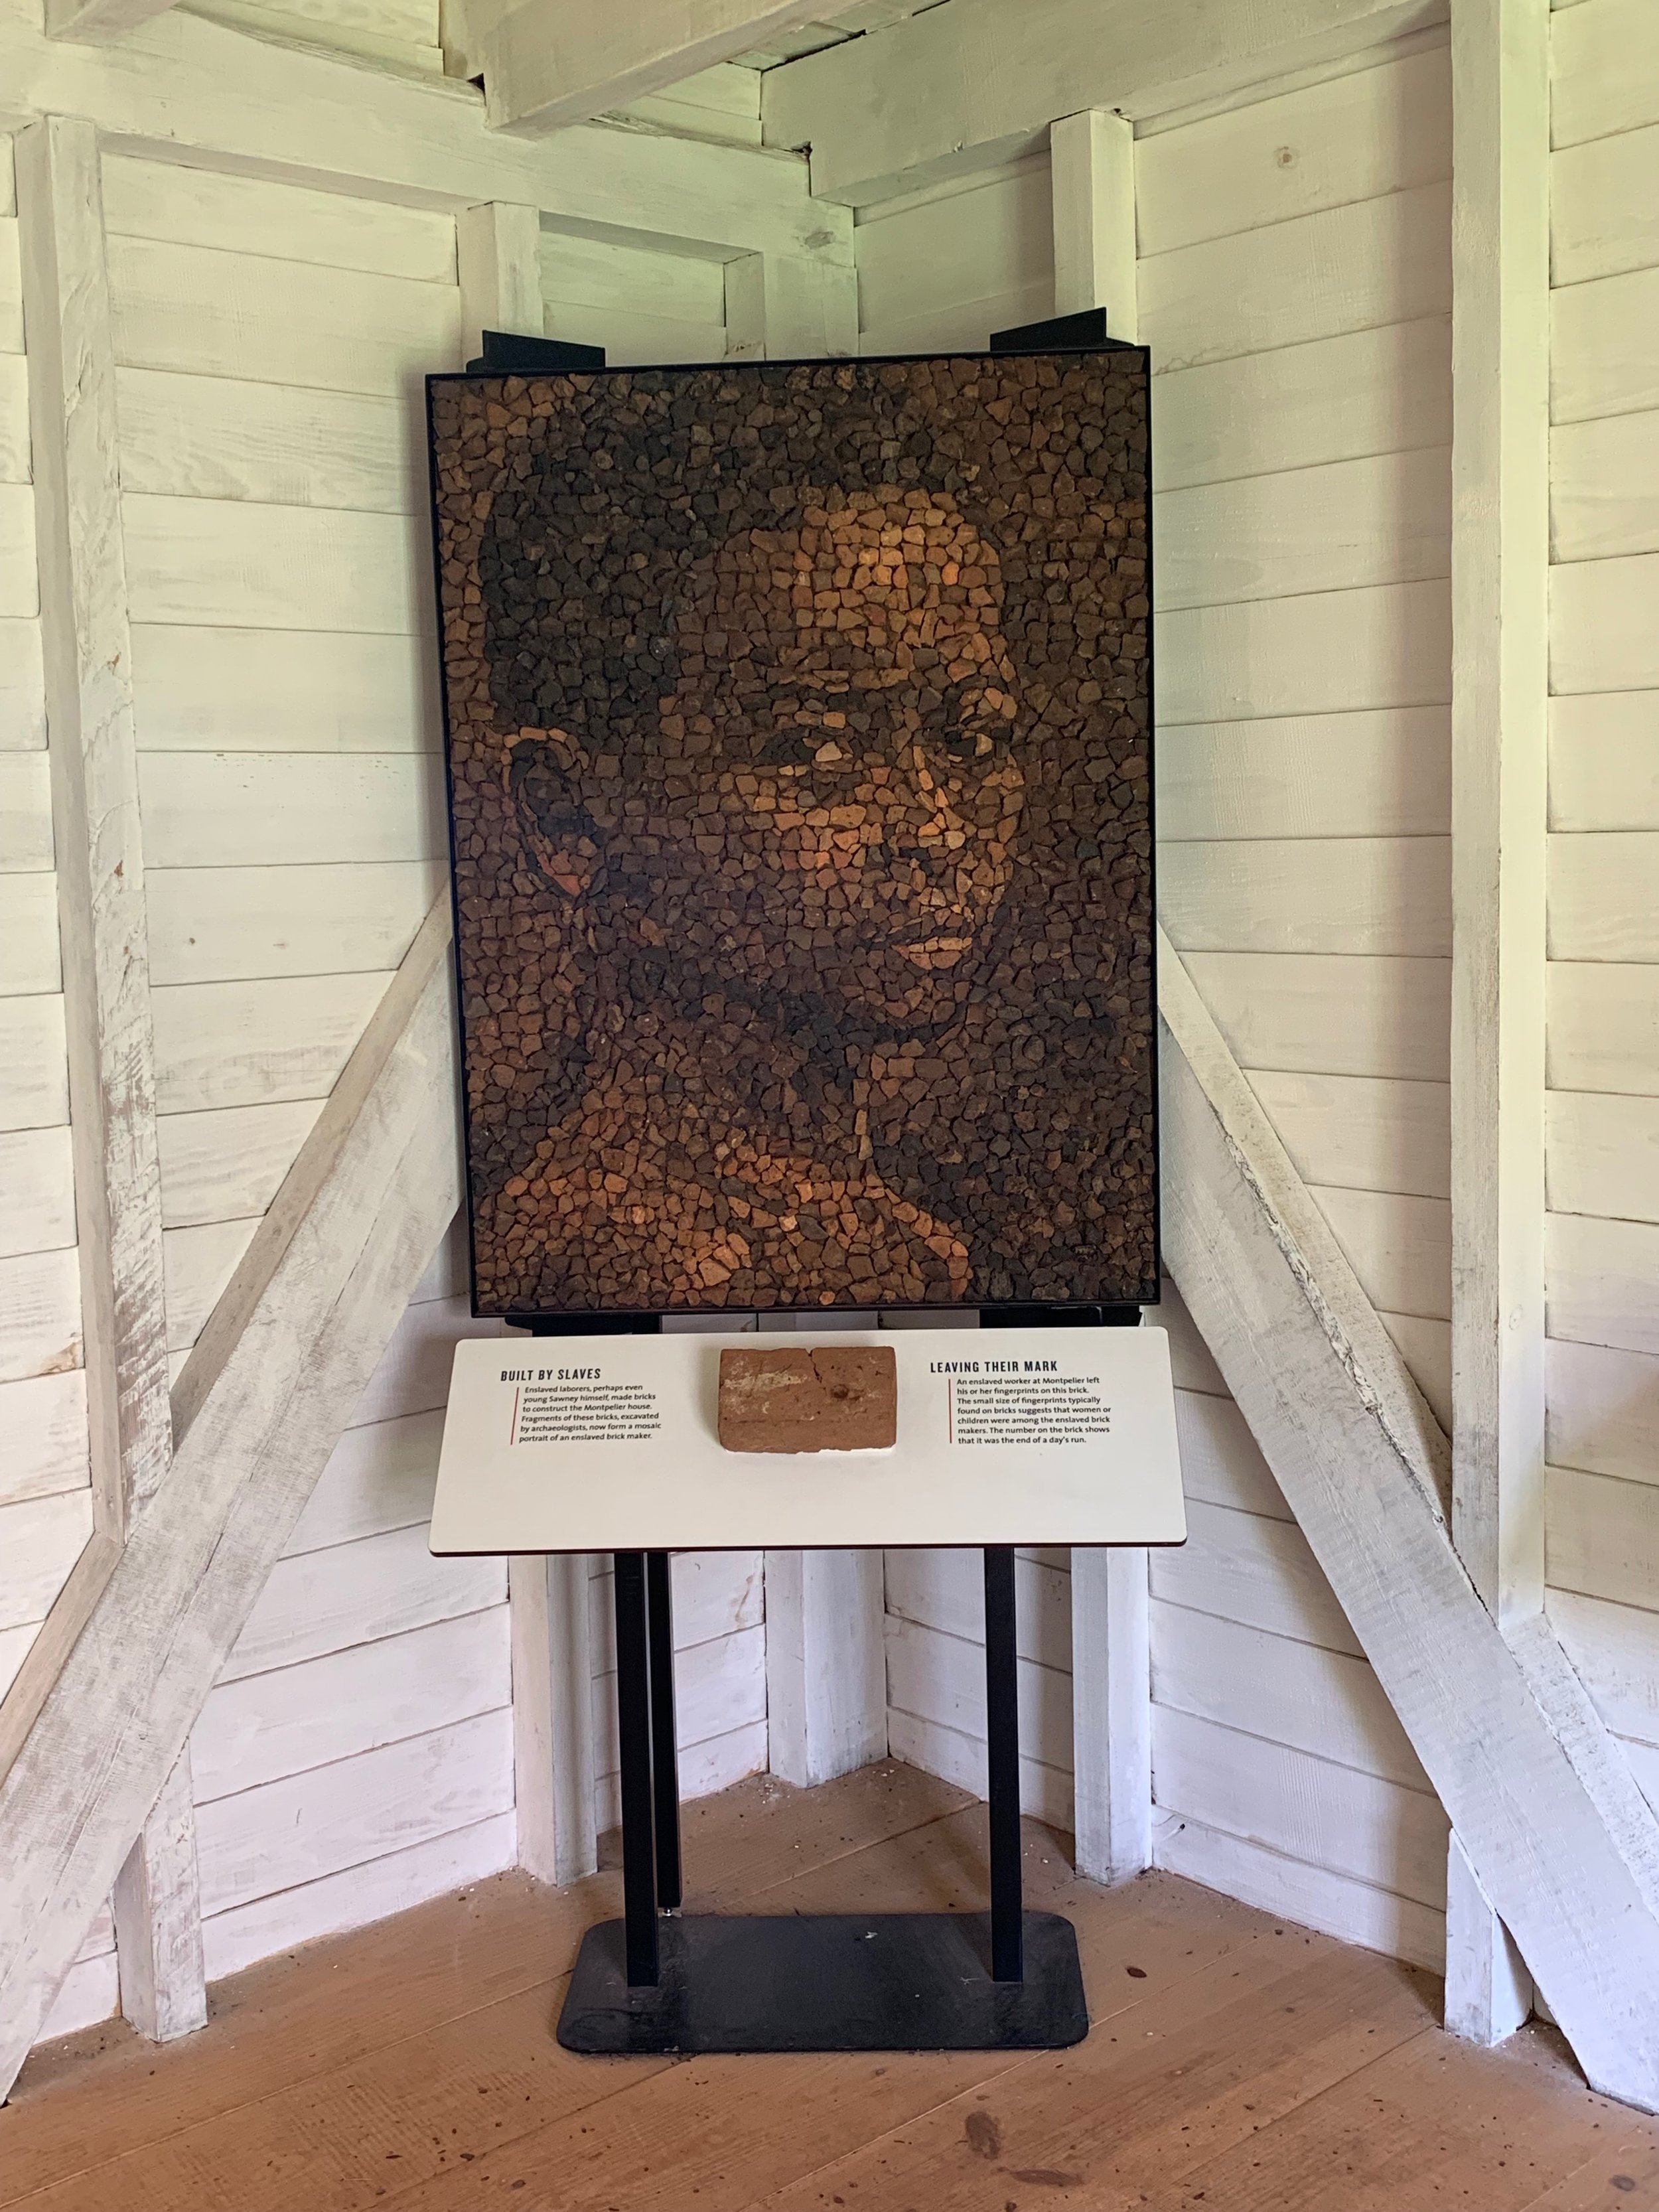 Brick mosaic of young enslaved boy constructed out of brick pieces excavated from the South Yard. Some of the shards contained fingerprints of the brick makers. Created by  Proun Design , The Montpelier Foundation. Photo by Renée Ater, August 2019.